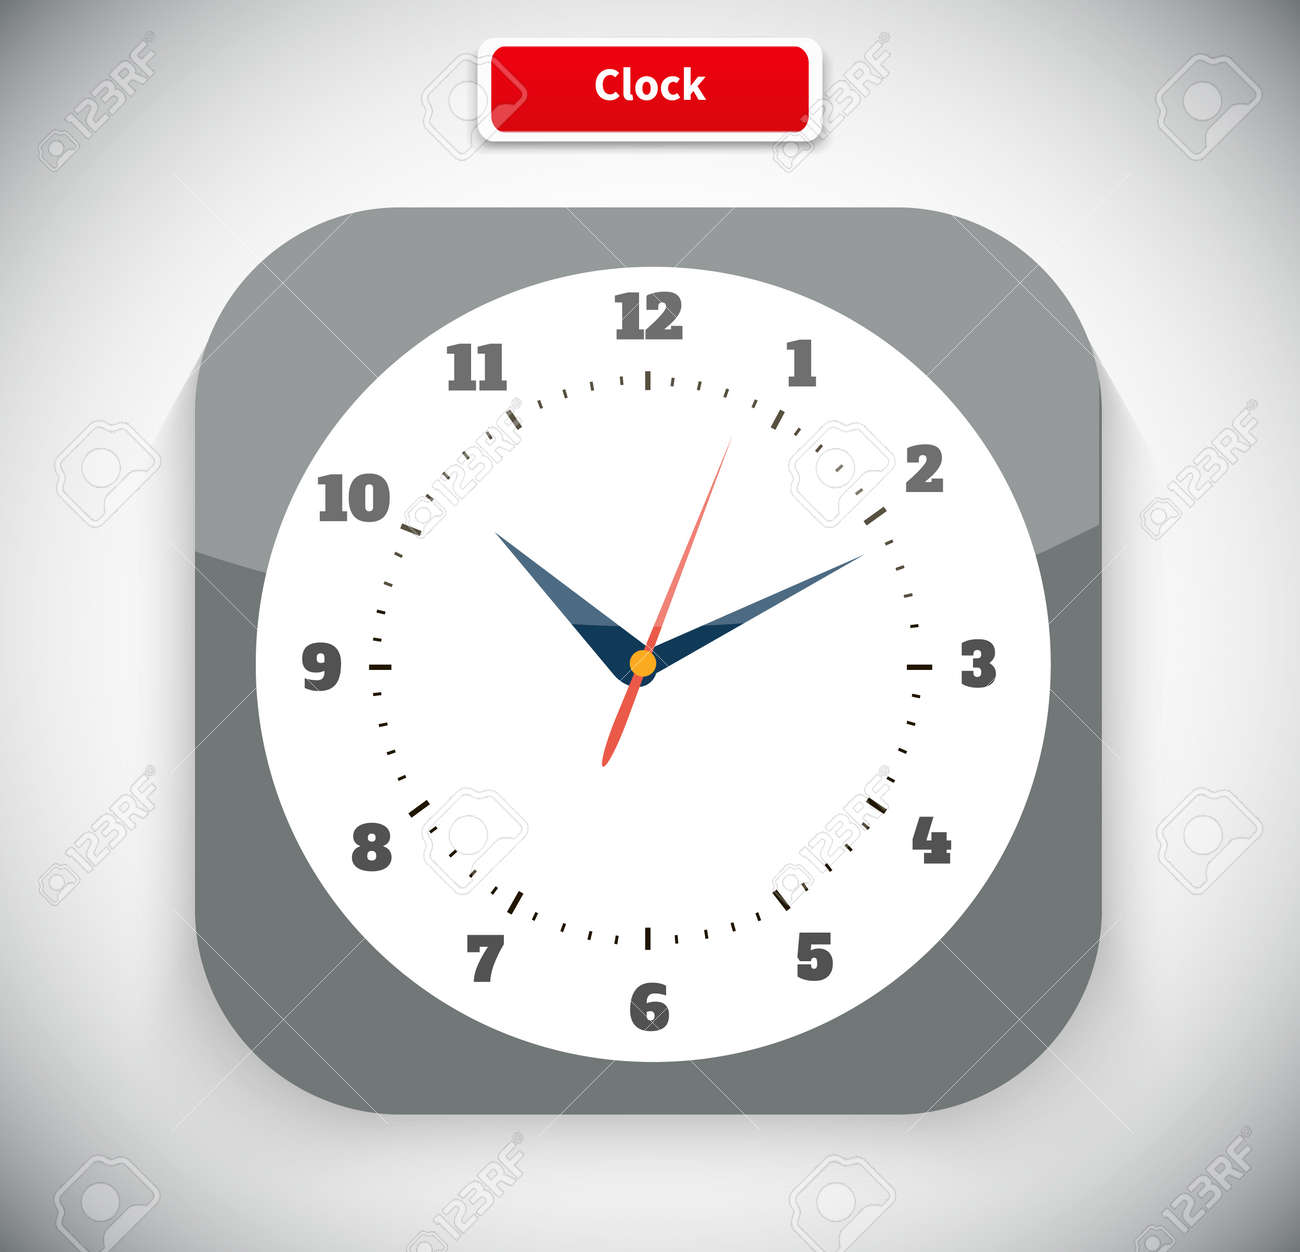 Time and clock icon  Time, watch, clock icon, alarm clock, wall